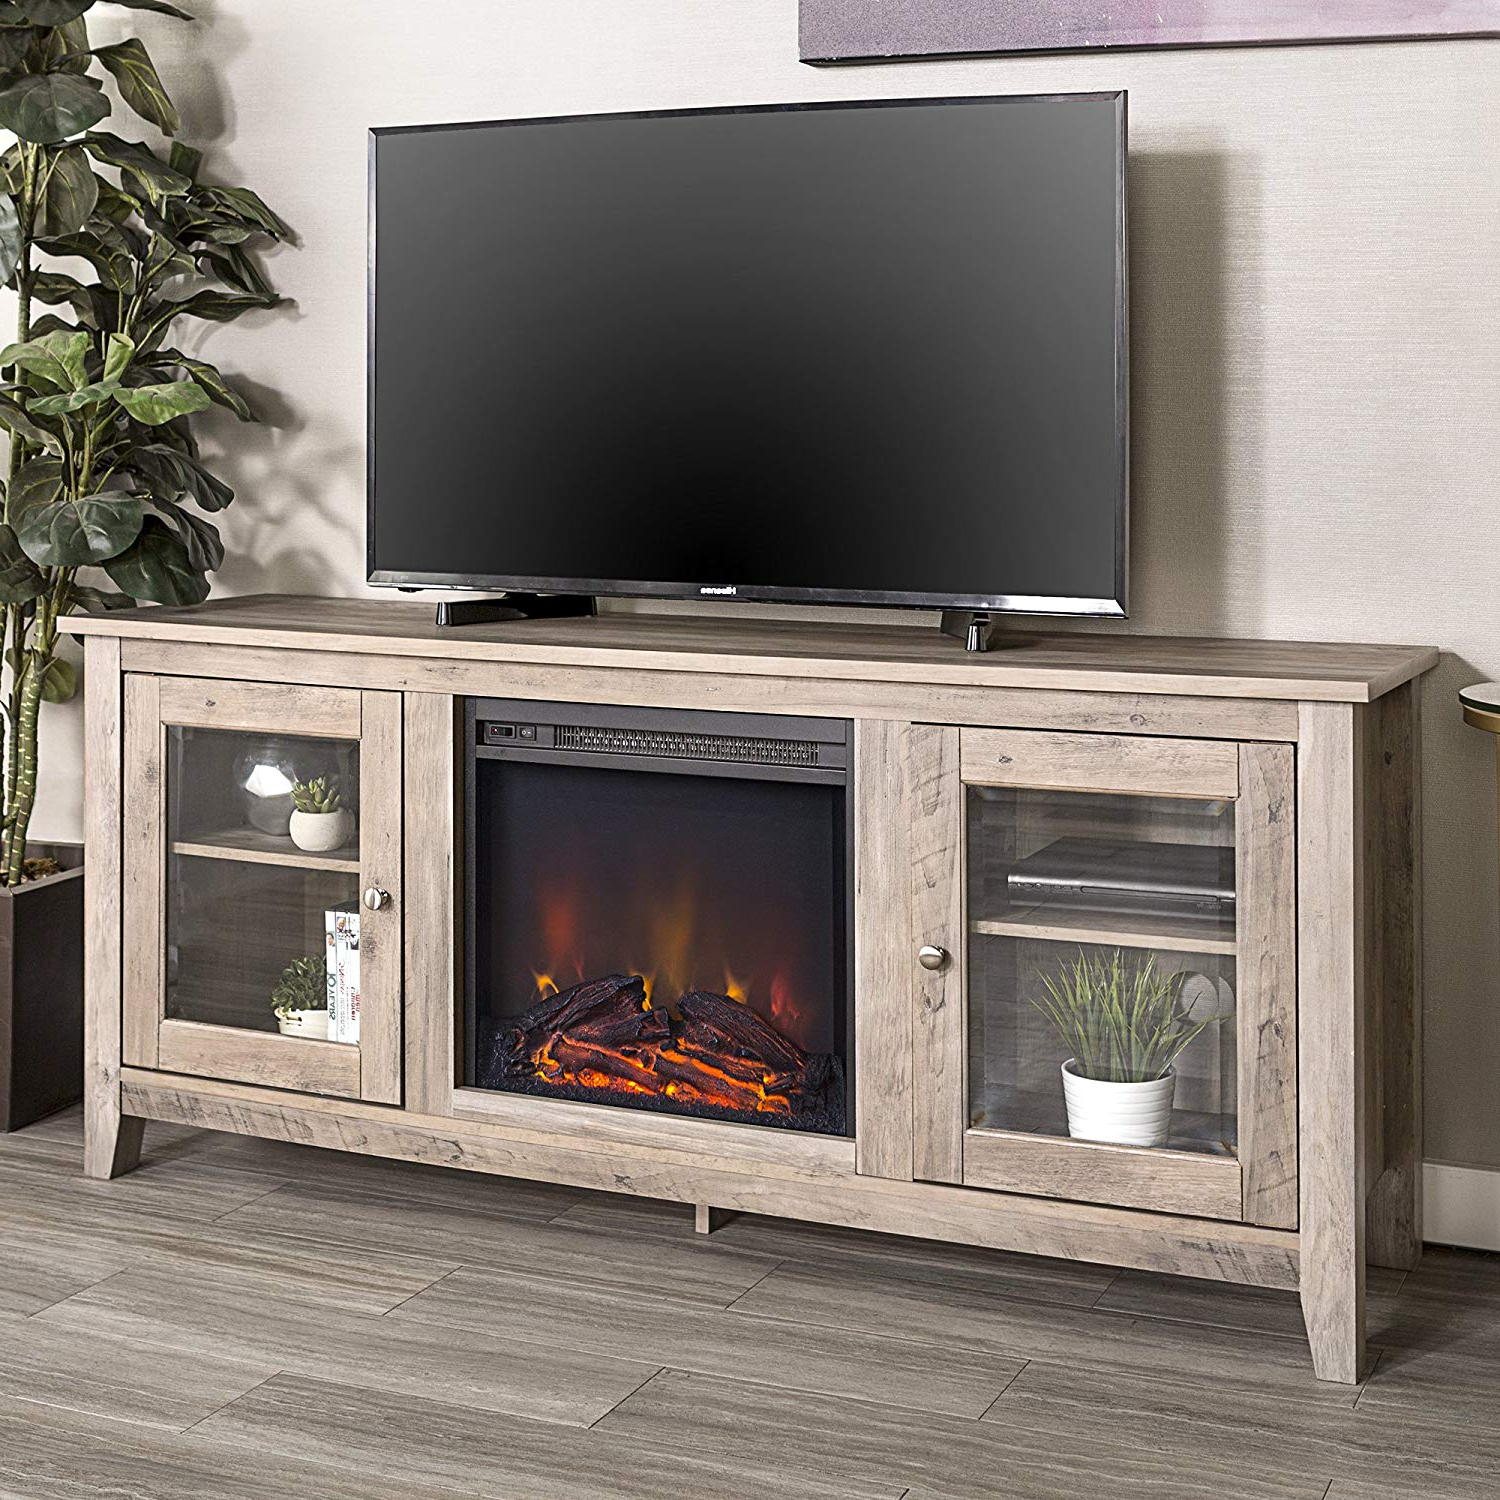 "Best And Newest Amazon: We Furniture 58"" Wood Media Tv Stand Console With Intended For Casey Grey 66 Inch Tv Stands (View 4 of 20)"